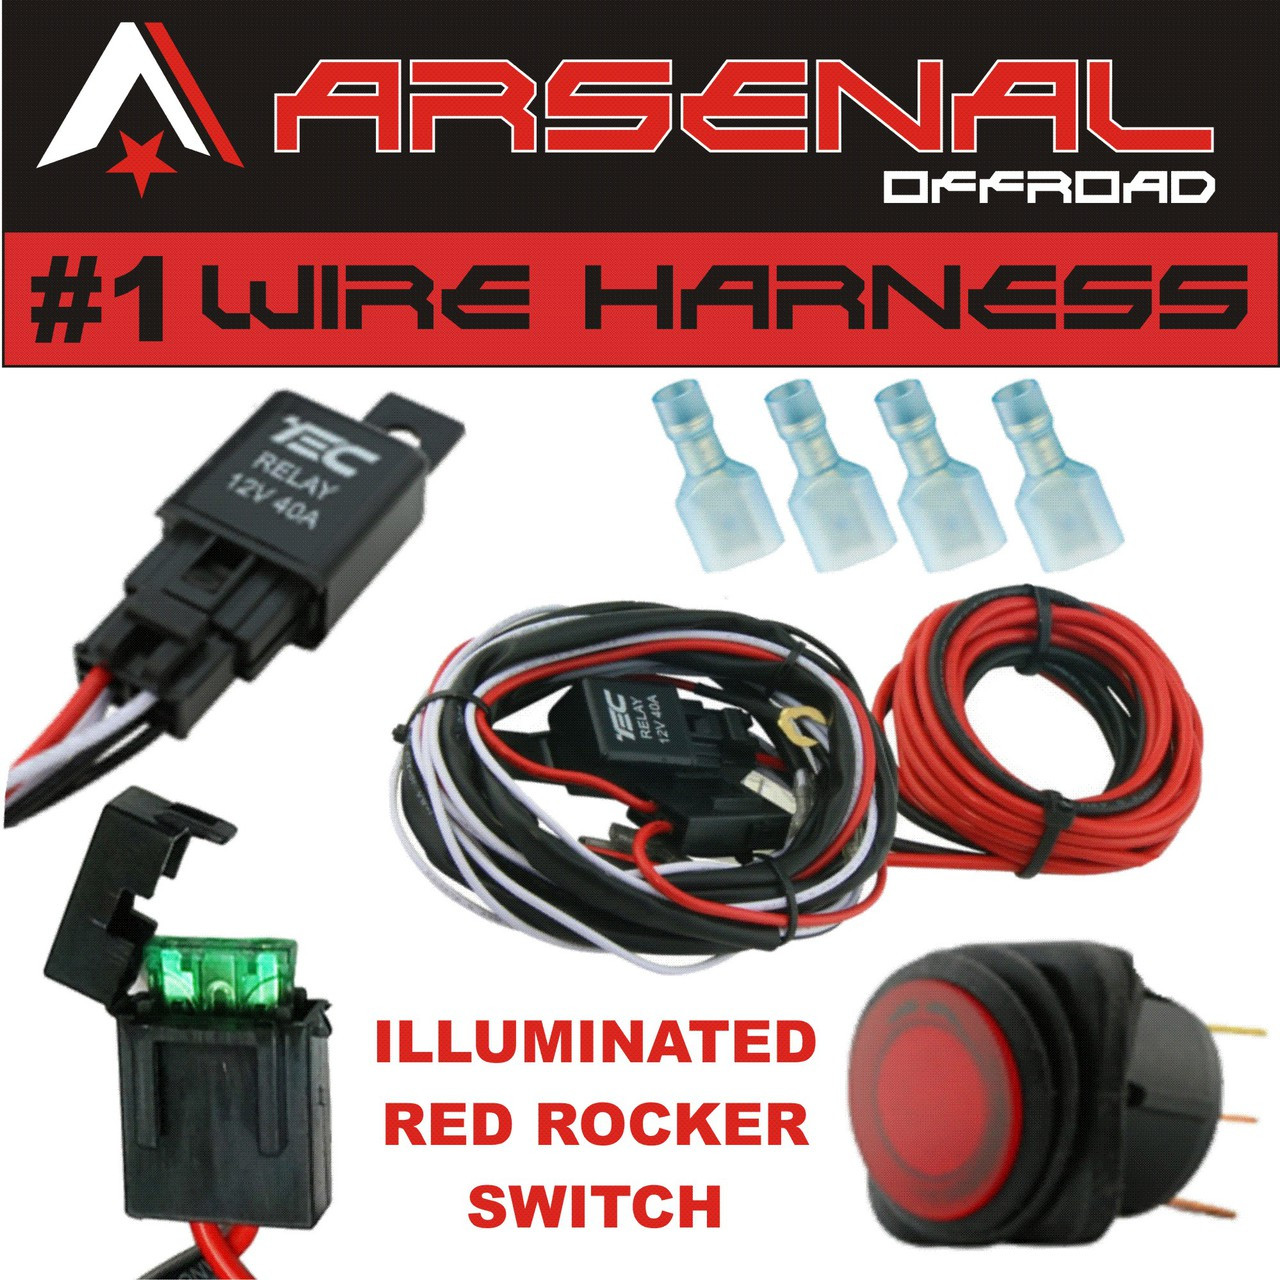 polaris rzr led light bar wiring harness get free image about wiring schema wiring diagram [ 1280 x 1280 Pixel ]